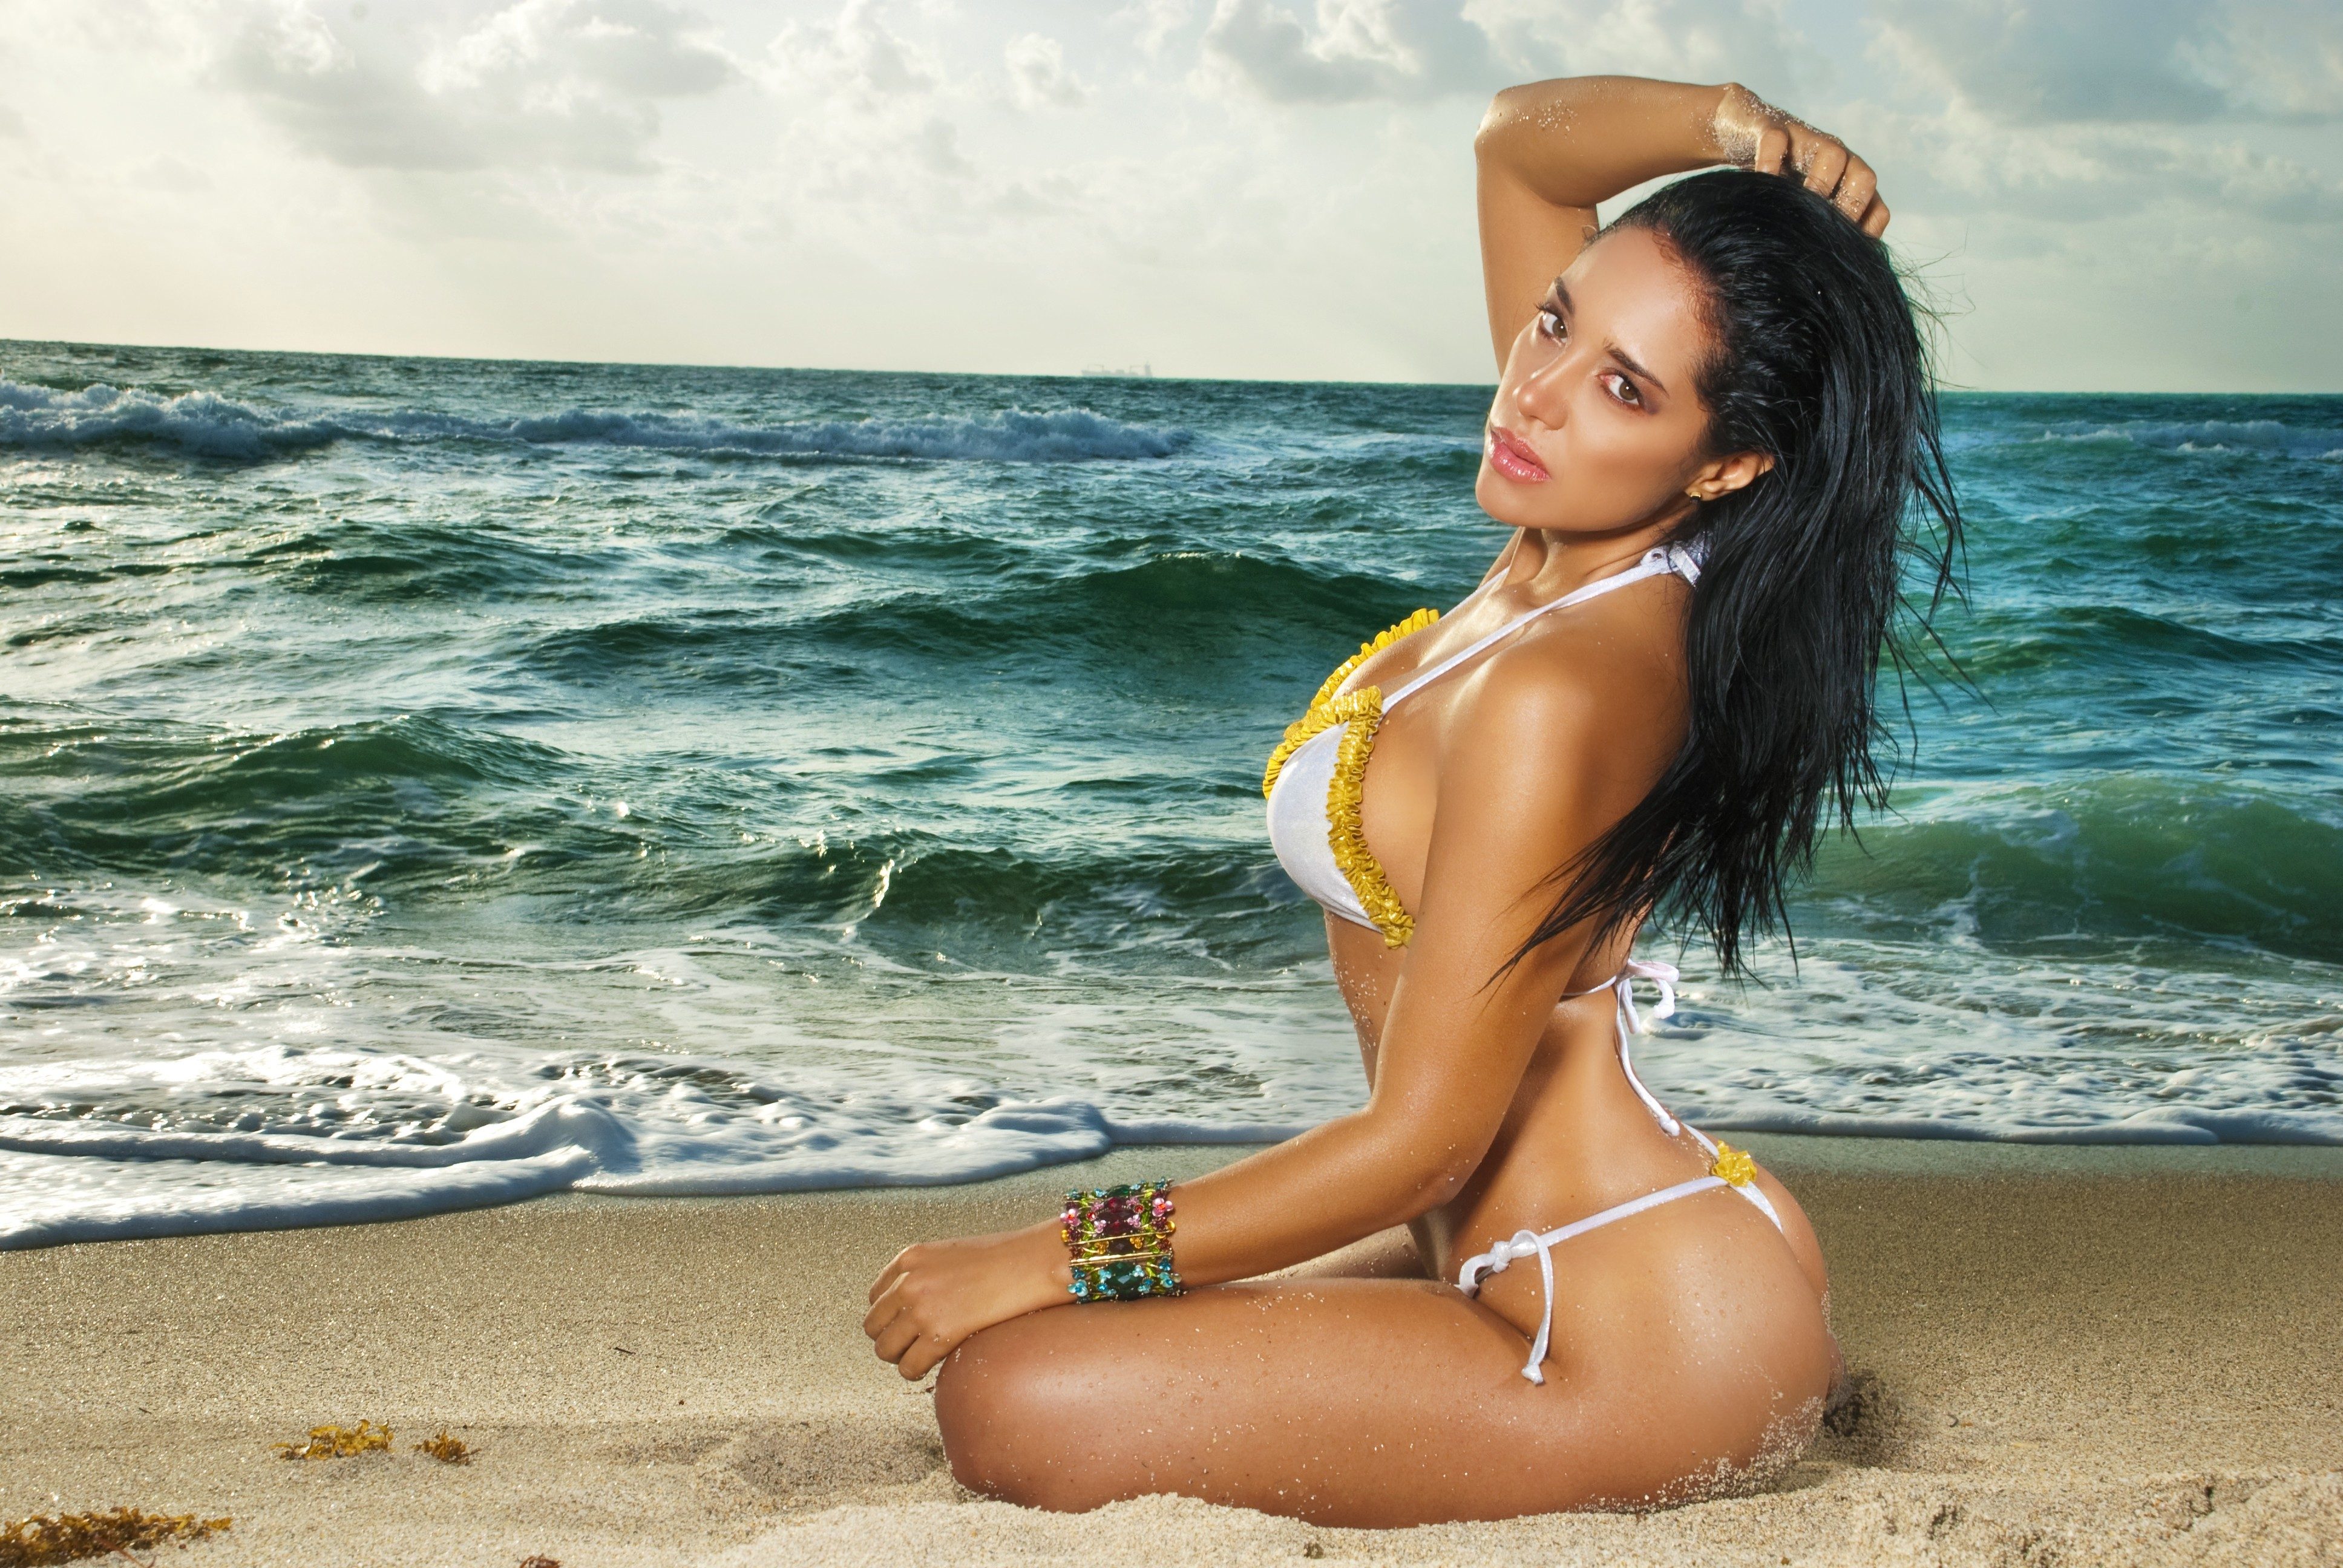 brunettes woman bikini sand HD Wallpaper